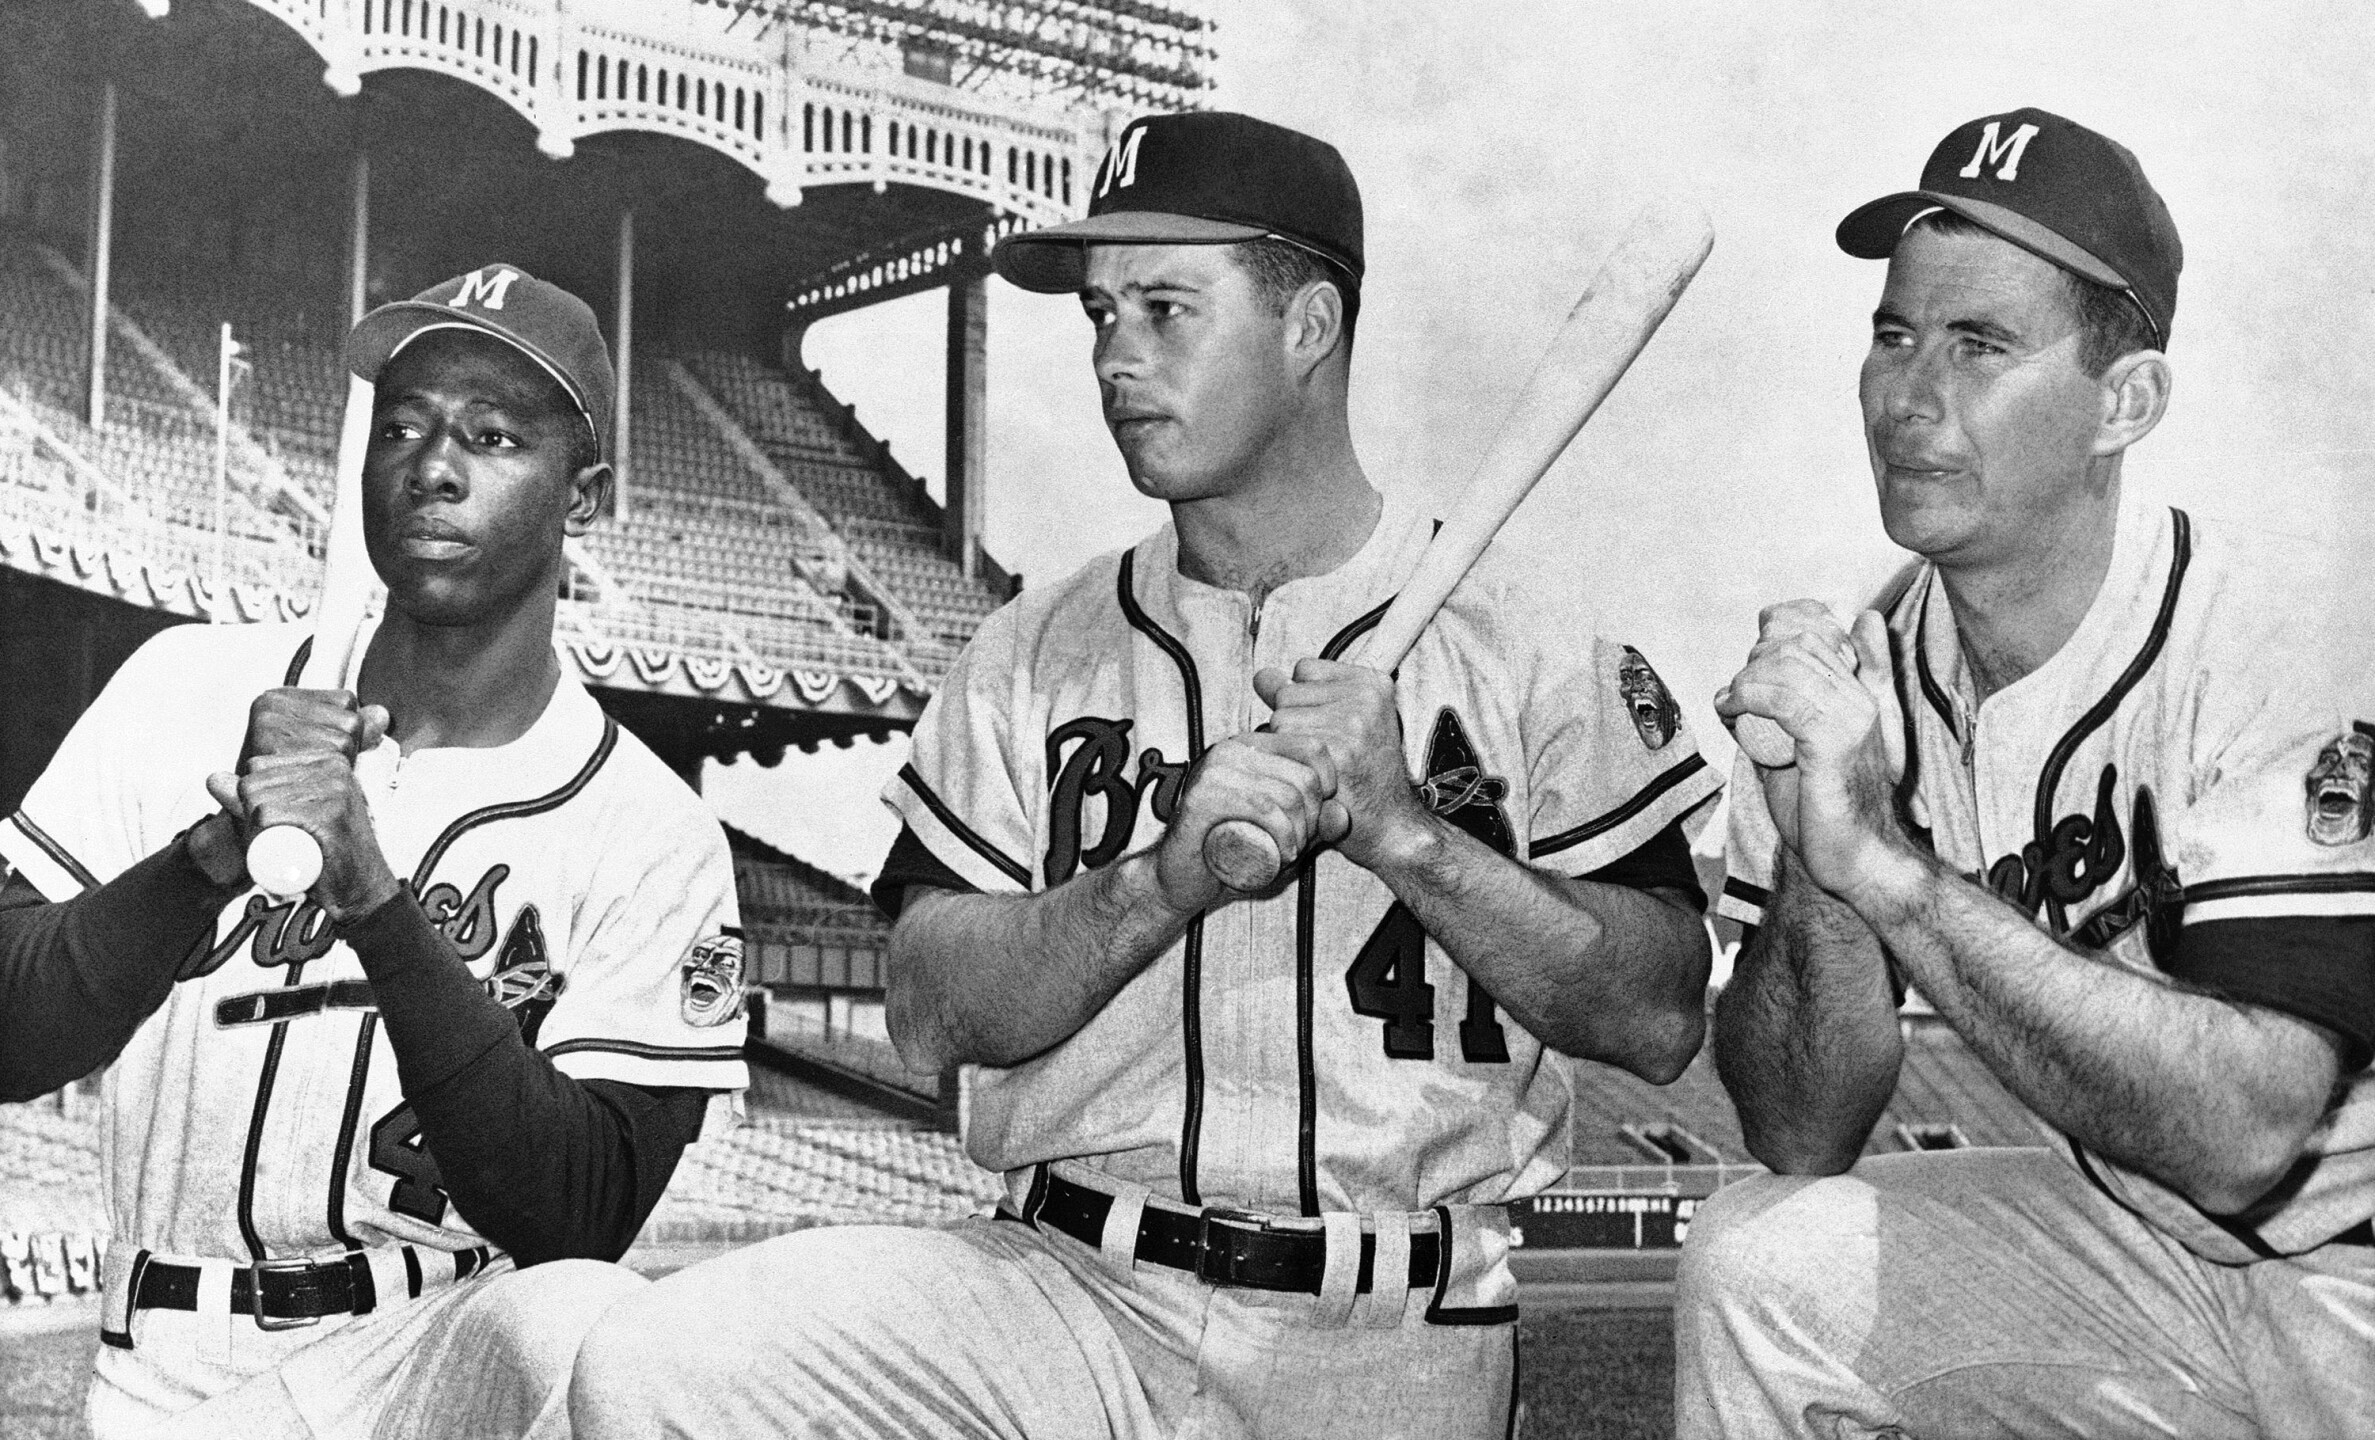 Hank Aaron, Eddie Mathews, Joe Adcock